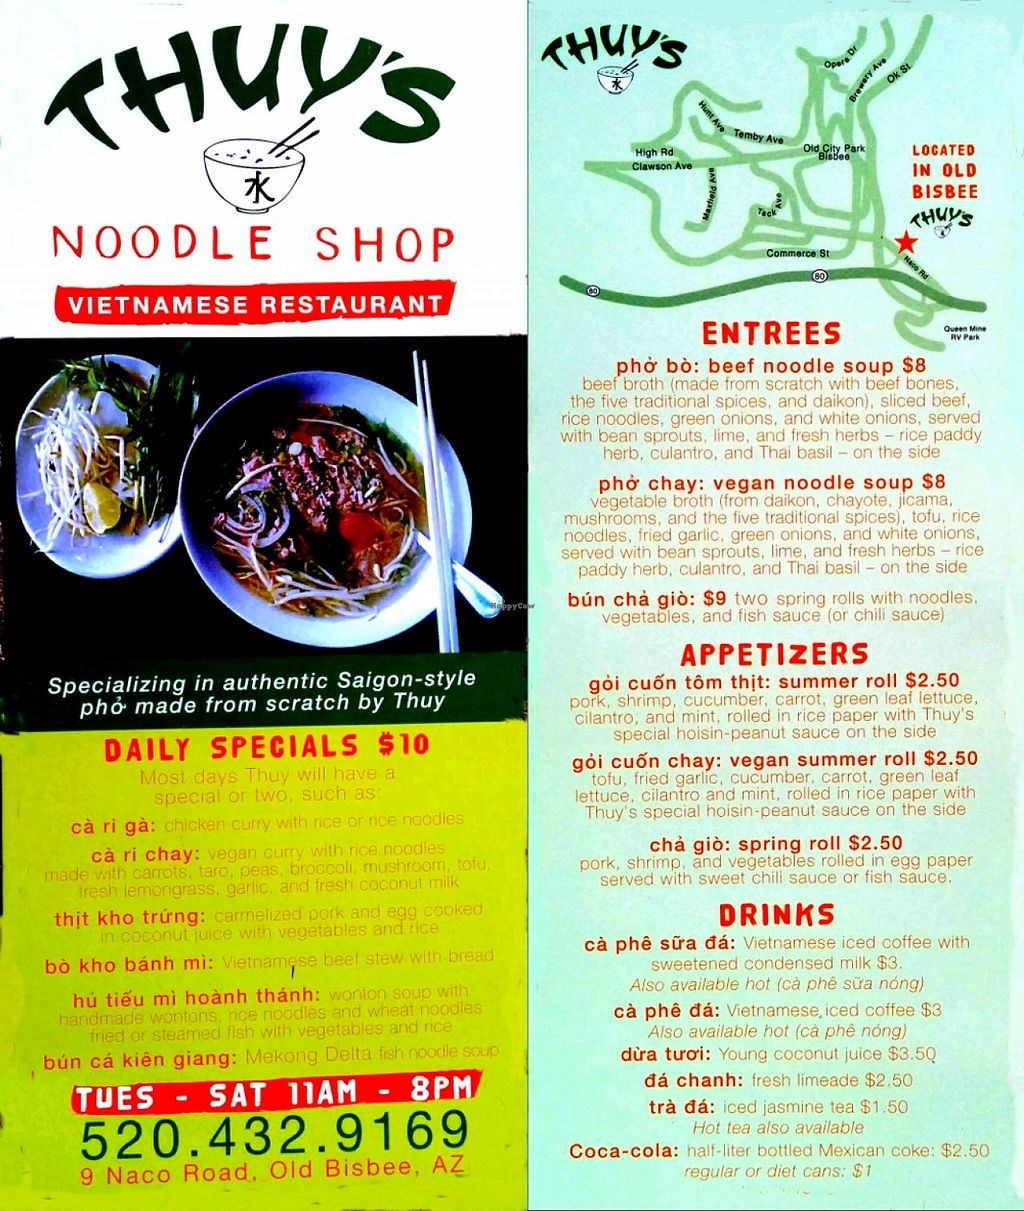 """Photo of Thuy's Noodle Shop  by <a href=""""/members/profile/amarello"""">amarello</a> <br/>Menu <br/> February 8, 2014  - <a href='/contact/abuse/image/40909/63933'>Report</a>"""